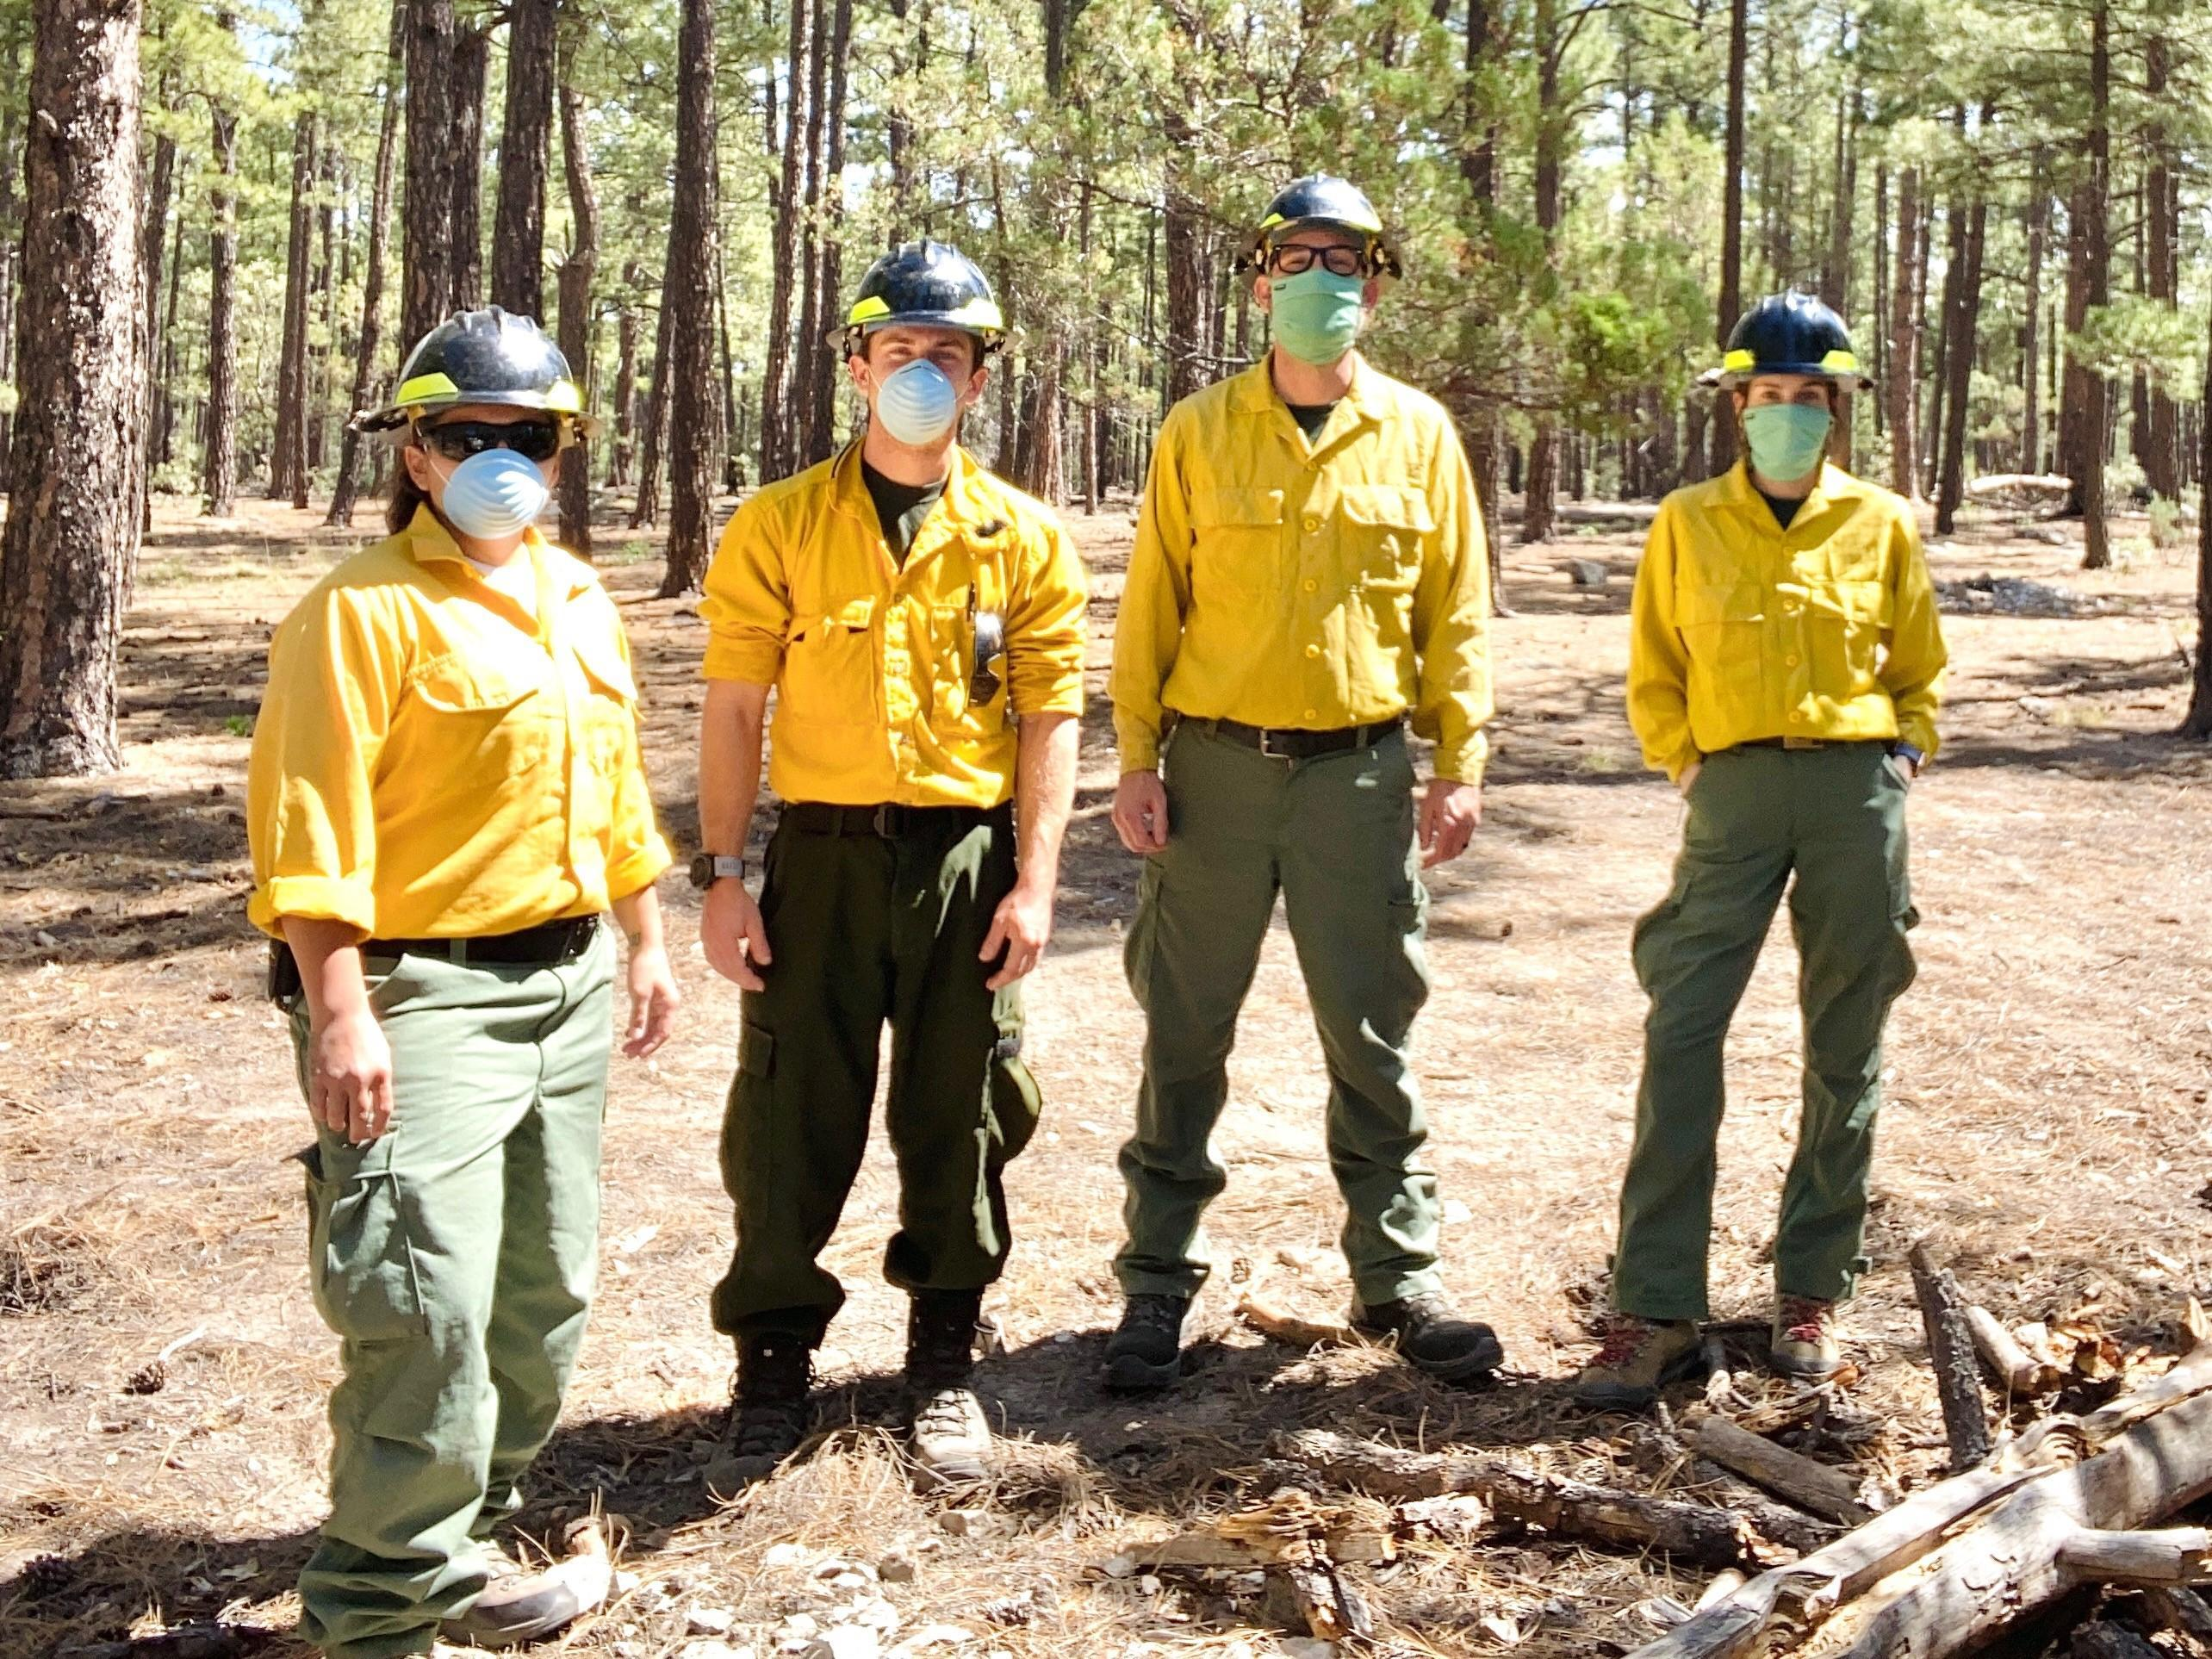 Image of Medics from Wilderness Medics inc. working on Tadpole Fire by Molly Barker